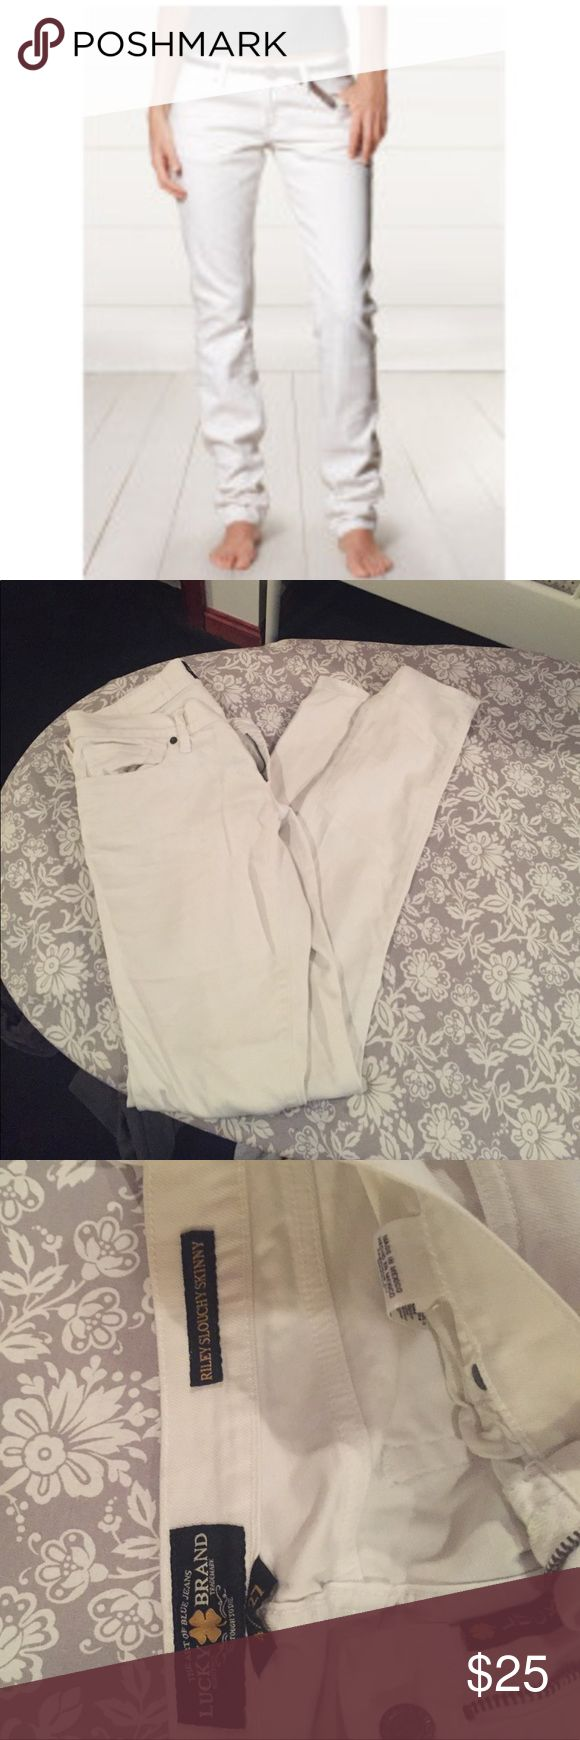 1 day sale! Lucky Brand white jeans 🍀 EUC Lucky Brand Riley Slouchy Skinny white jeans, the best jeans for summer! 🍀 Lucky Brand Jeans Skinny